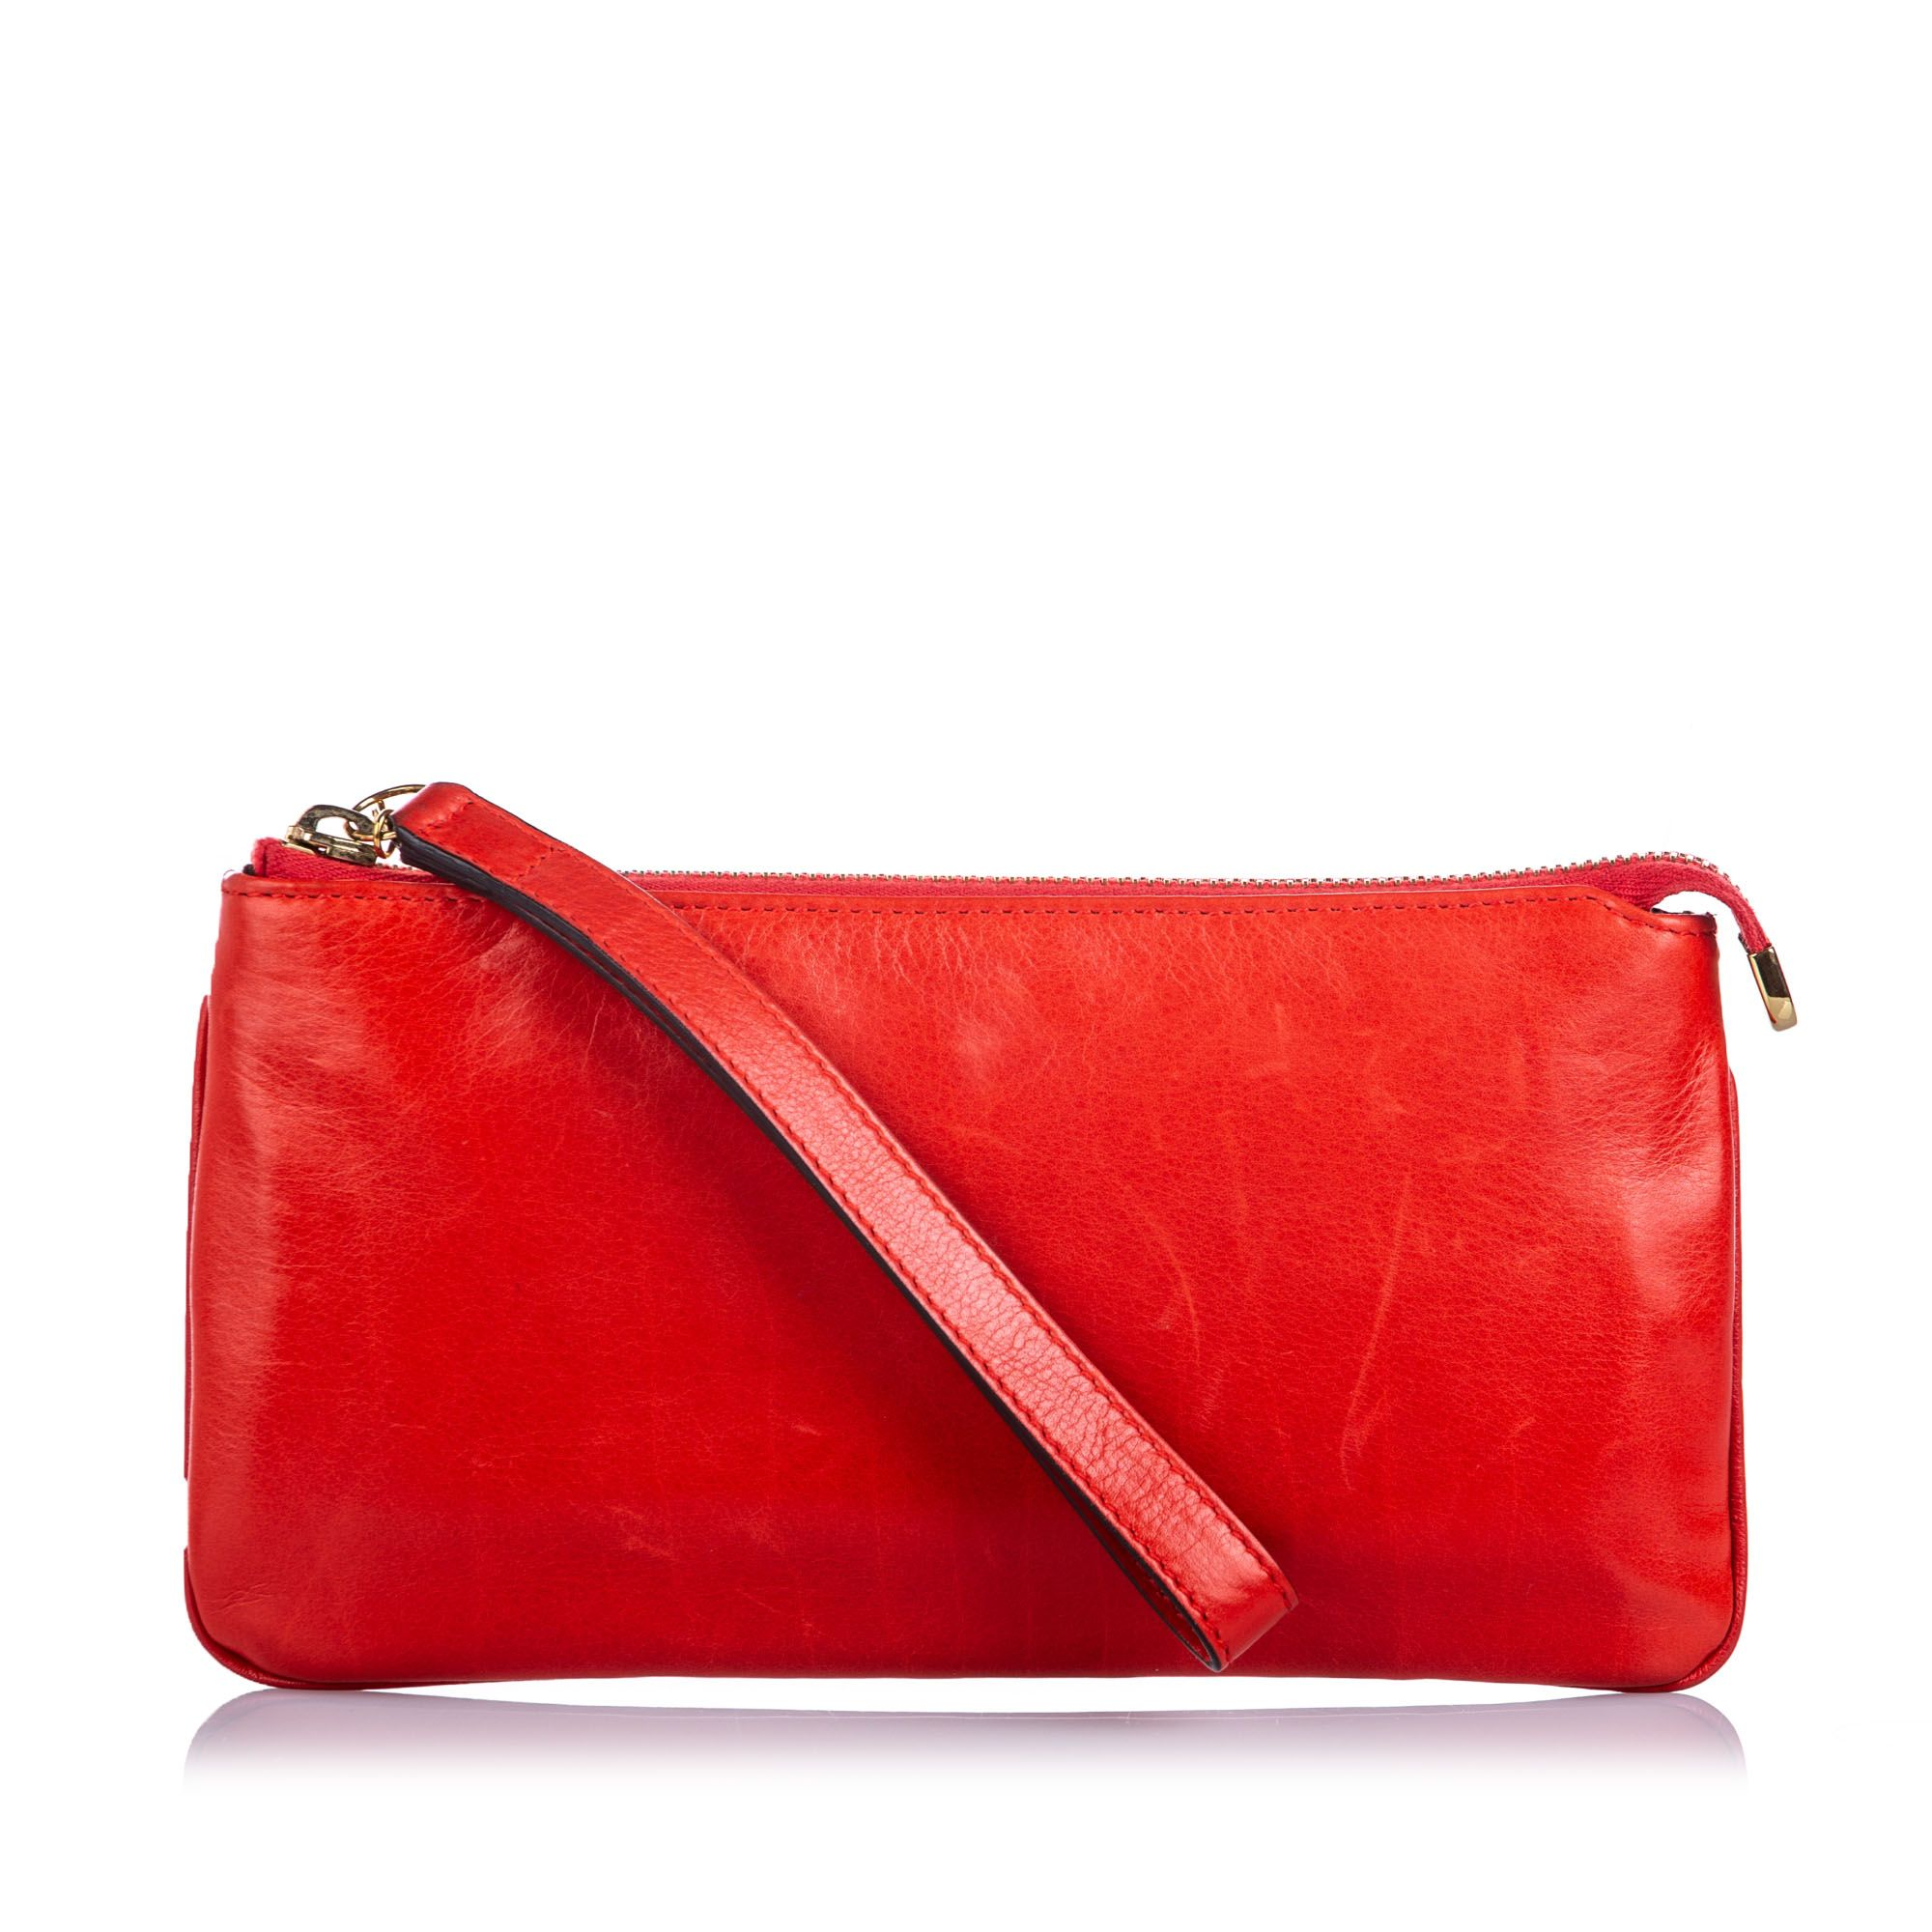 Vintage Gucci Leather Wristlet Red